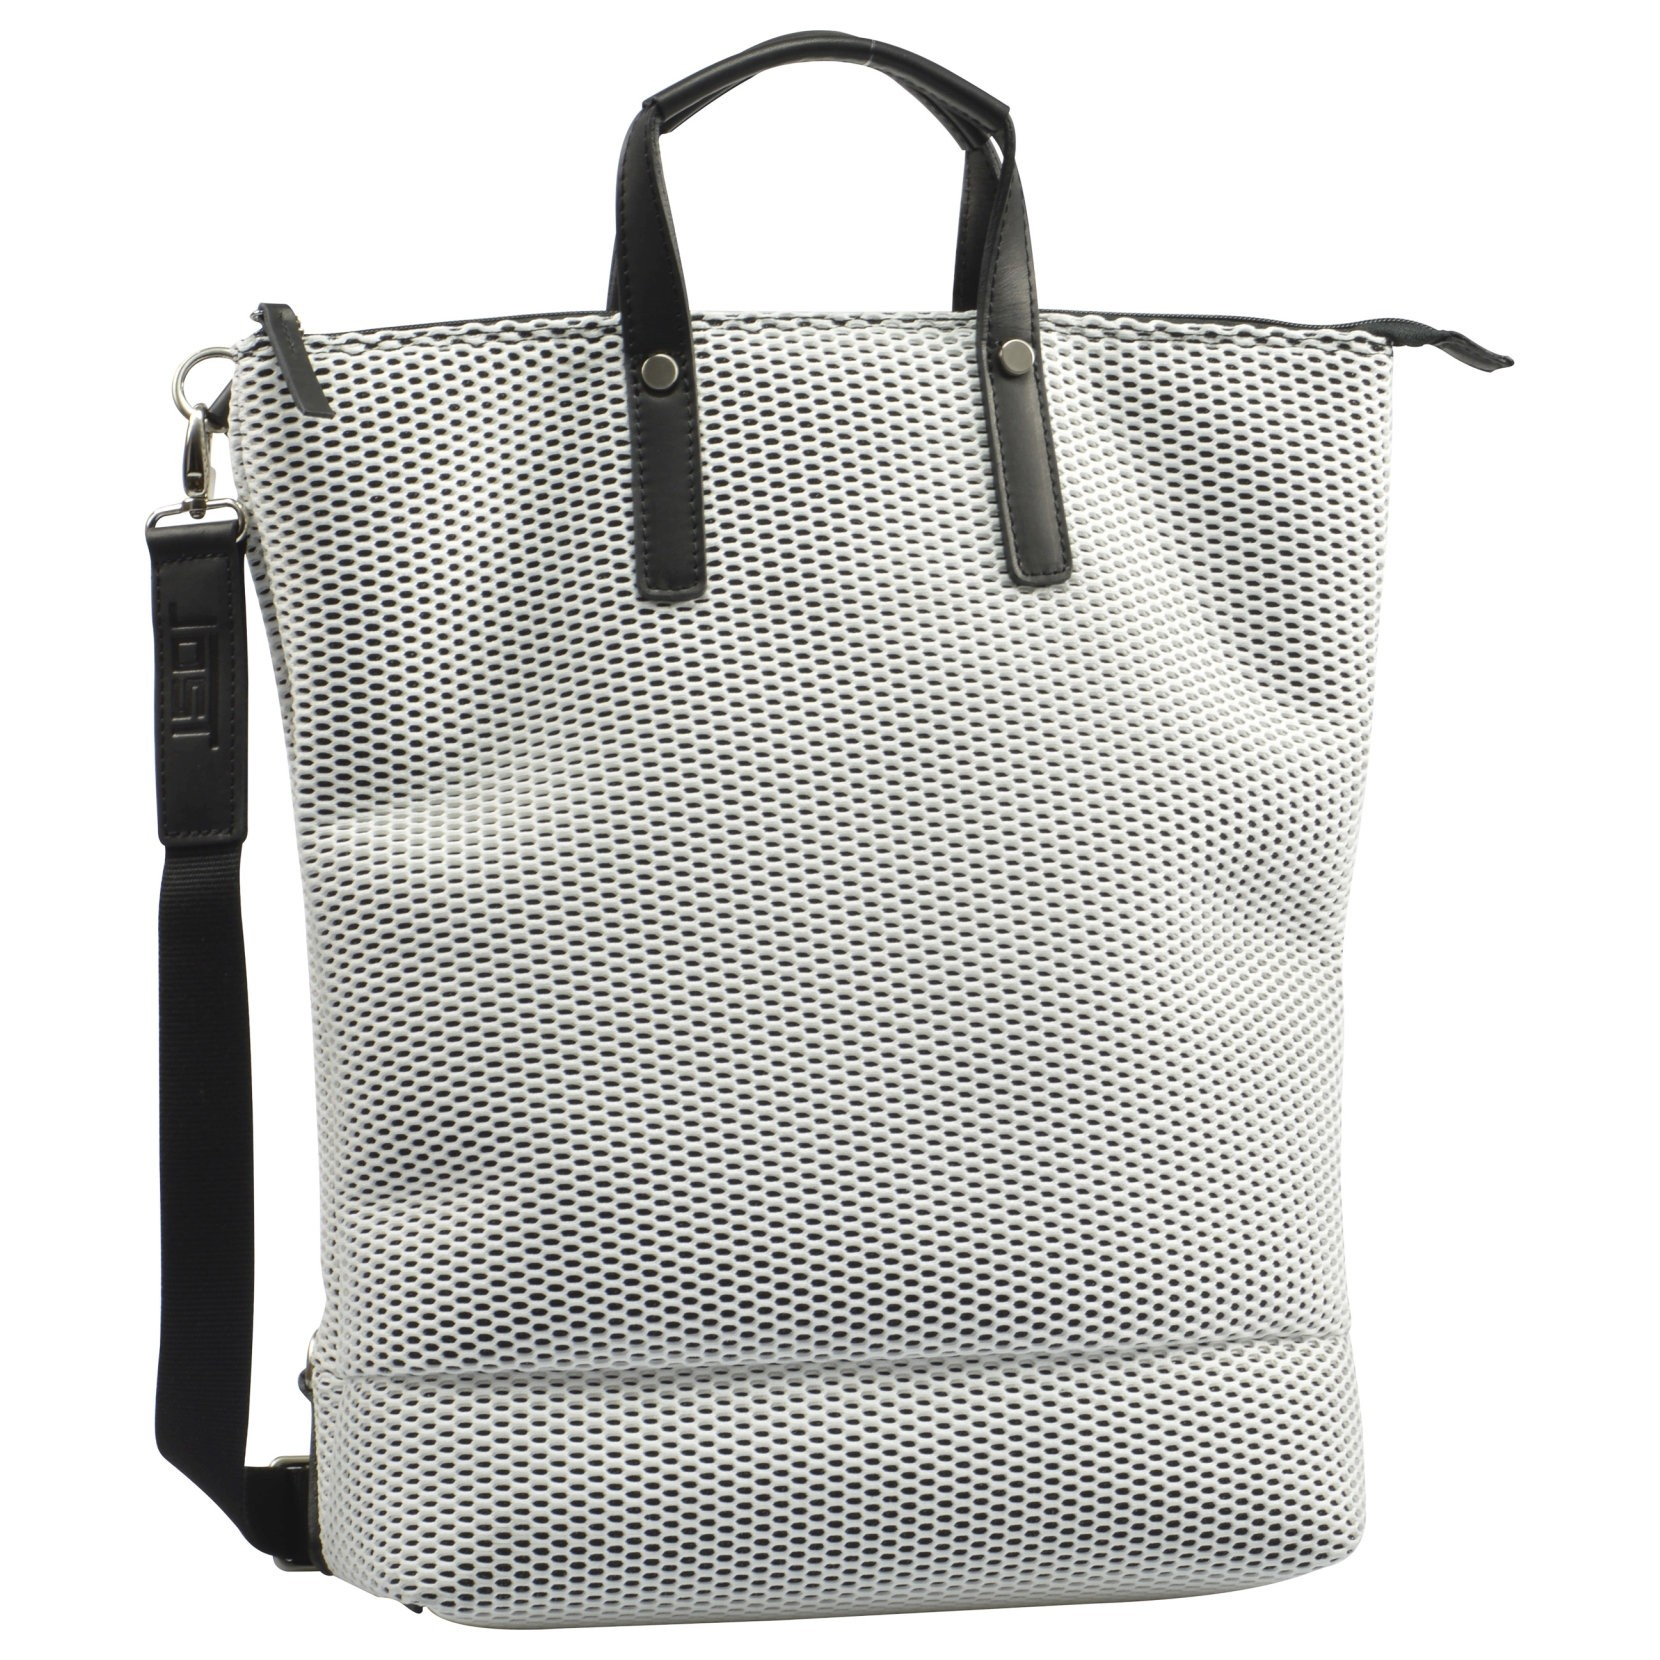 bd571e5bfc5cc Mesh 6178 X-Change 3in1 Bag S weiss - Todt   Meiers